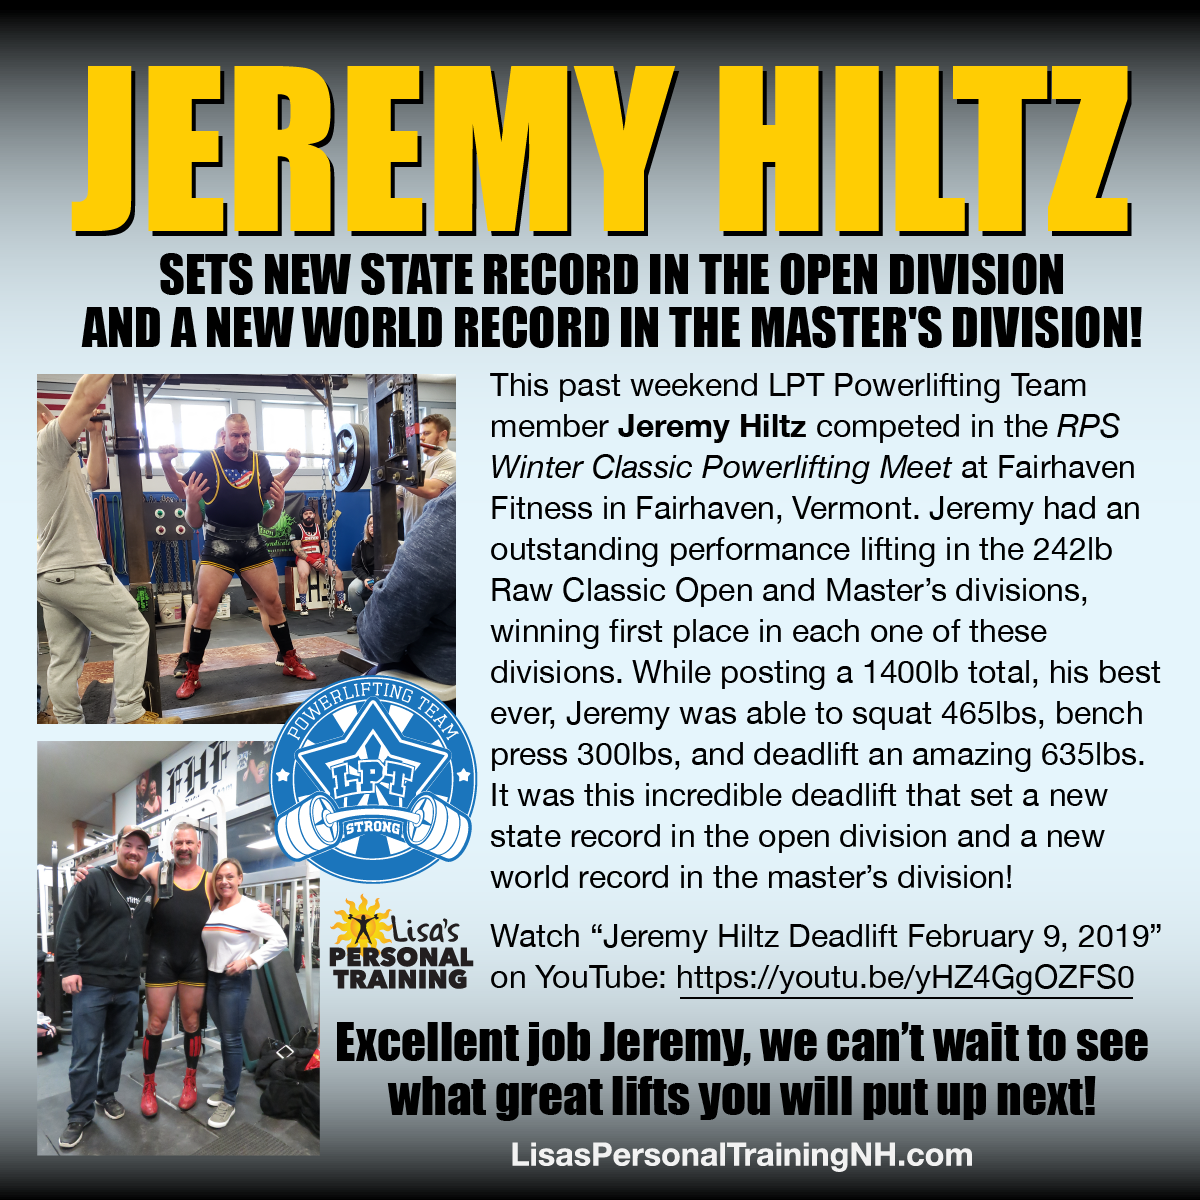 Jeremy Hiltz sets state record and a new world record